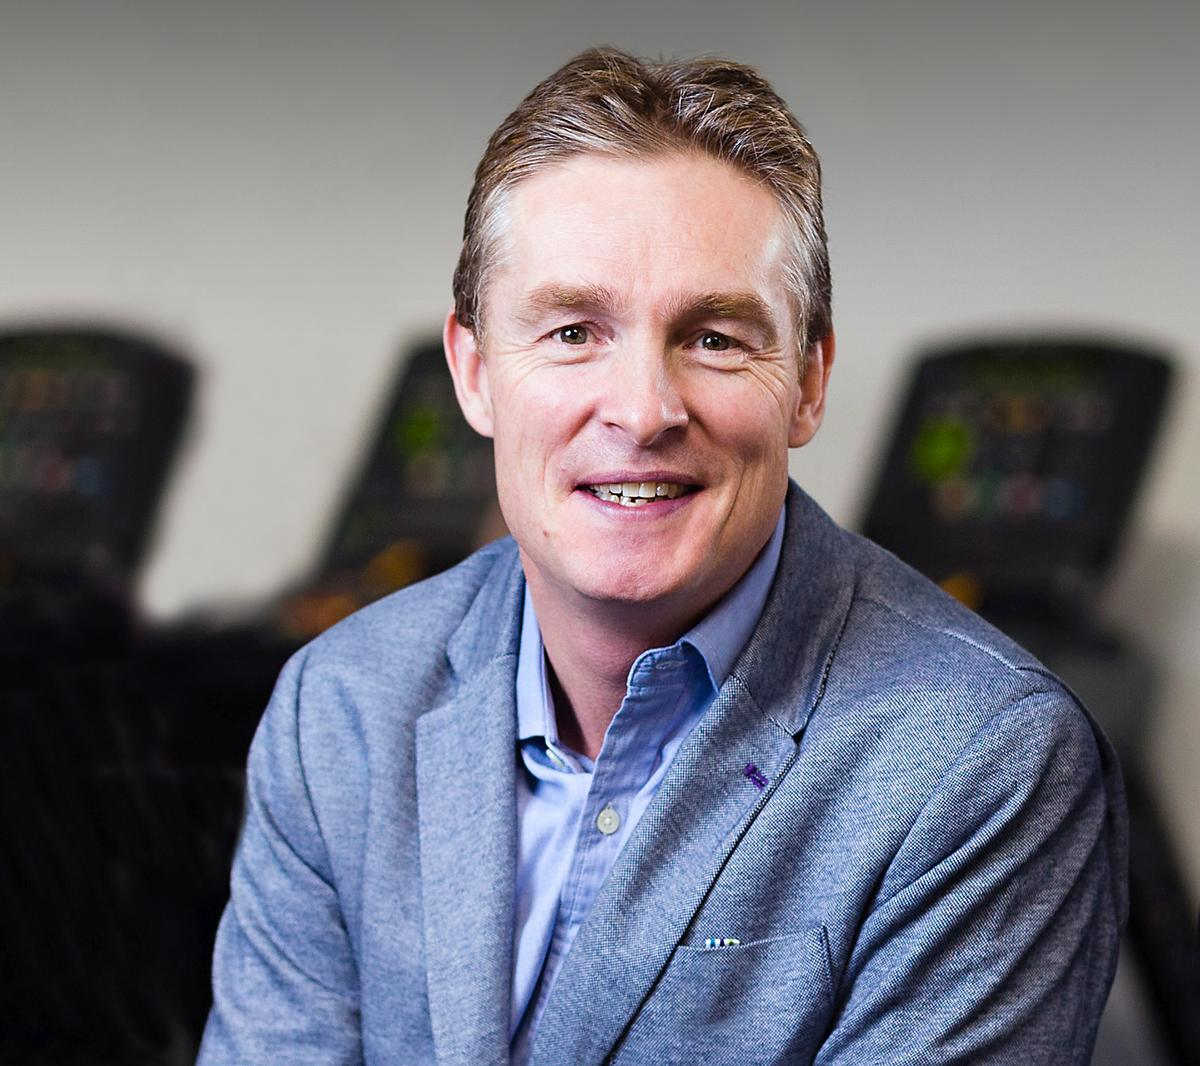 Low cost operators like the Humphrey Cobbold-led Pure Gym continue to drive UK health and fitness industry growth